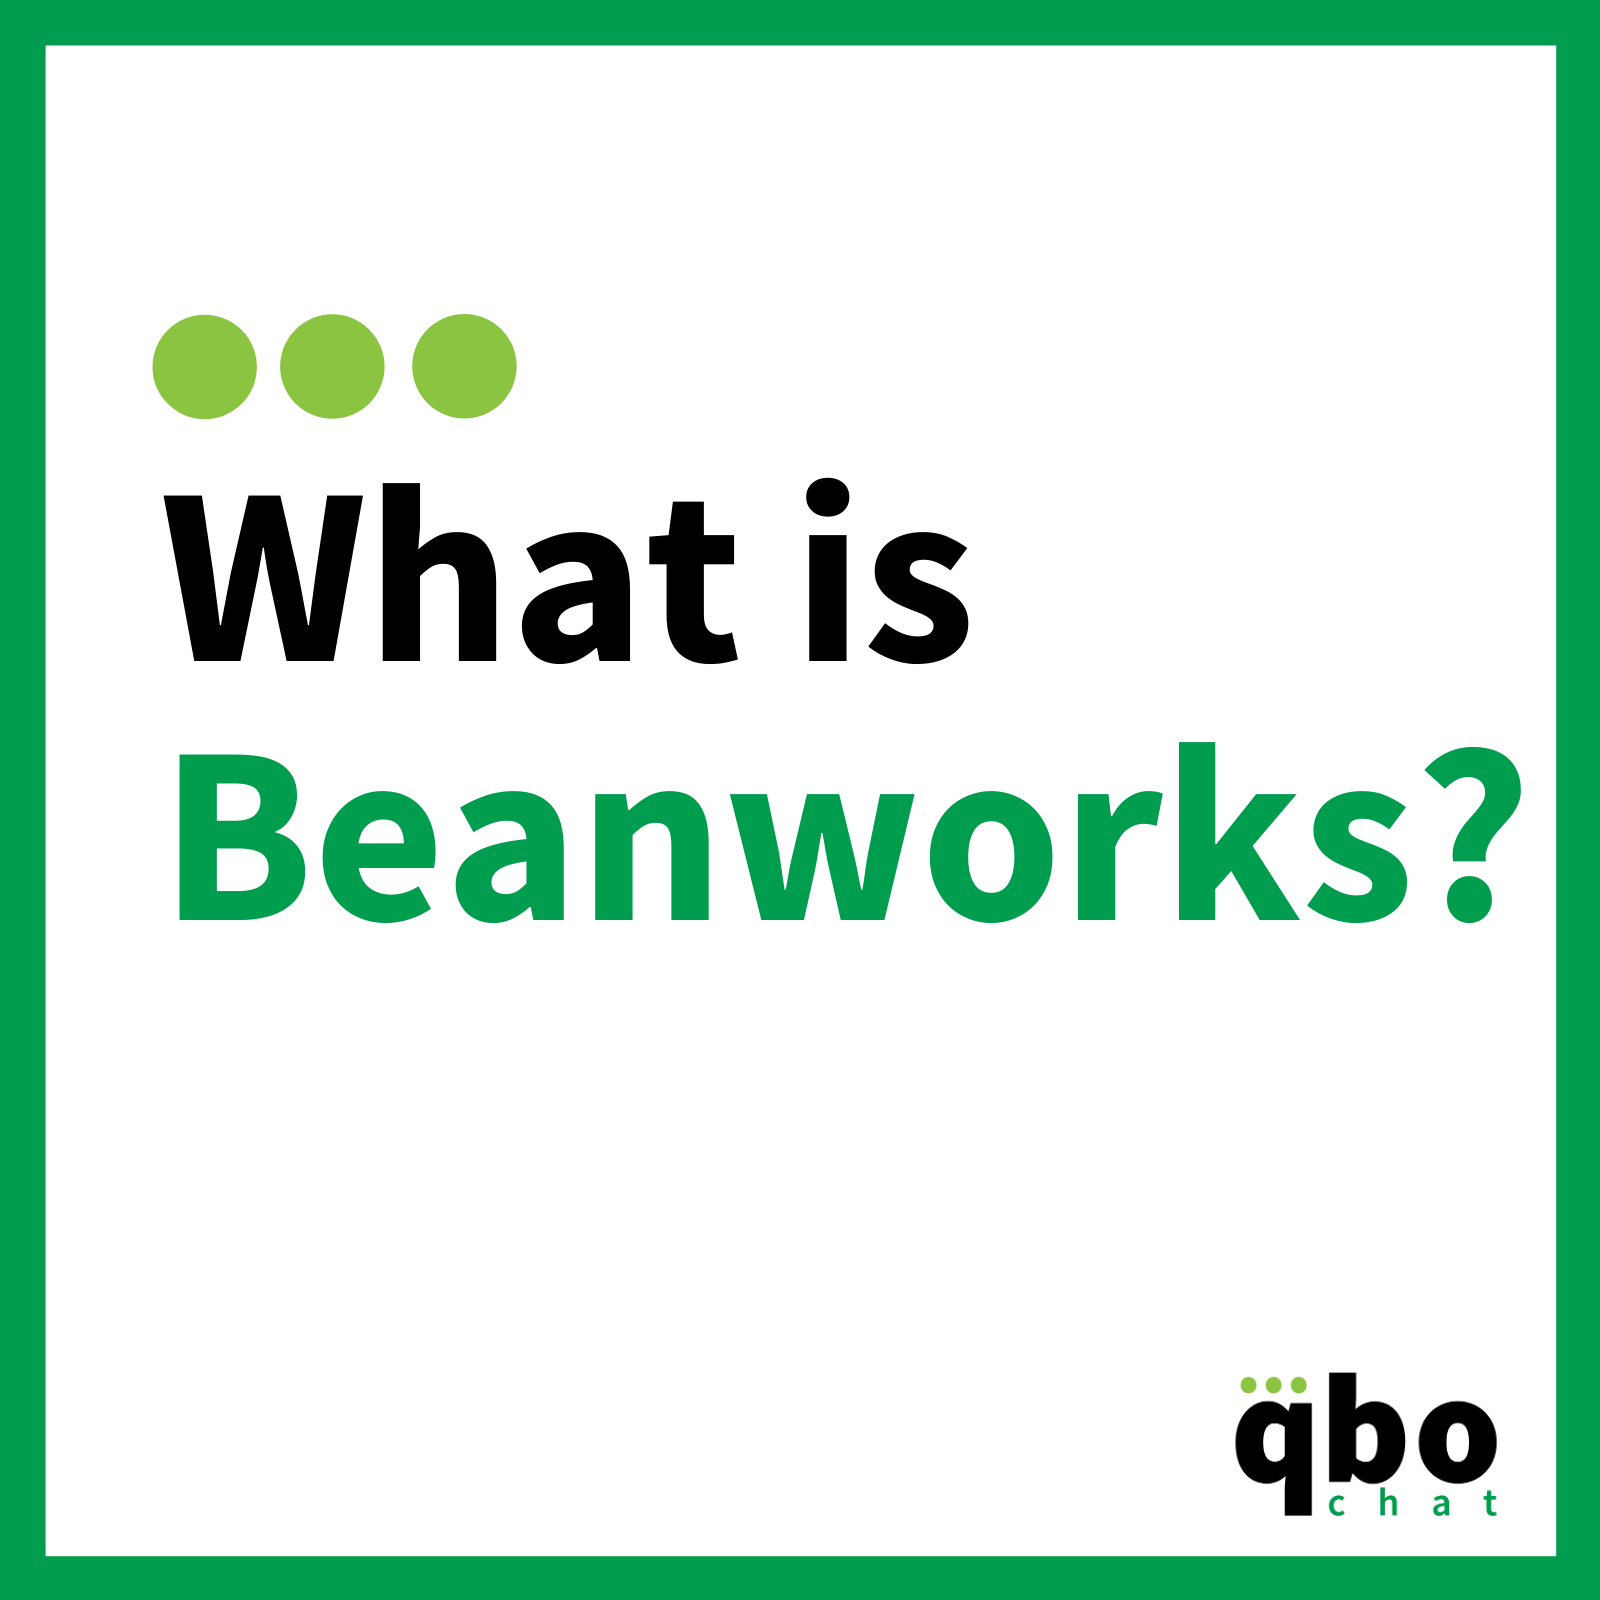 What is Beanworks?